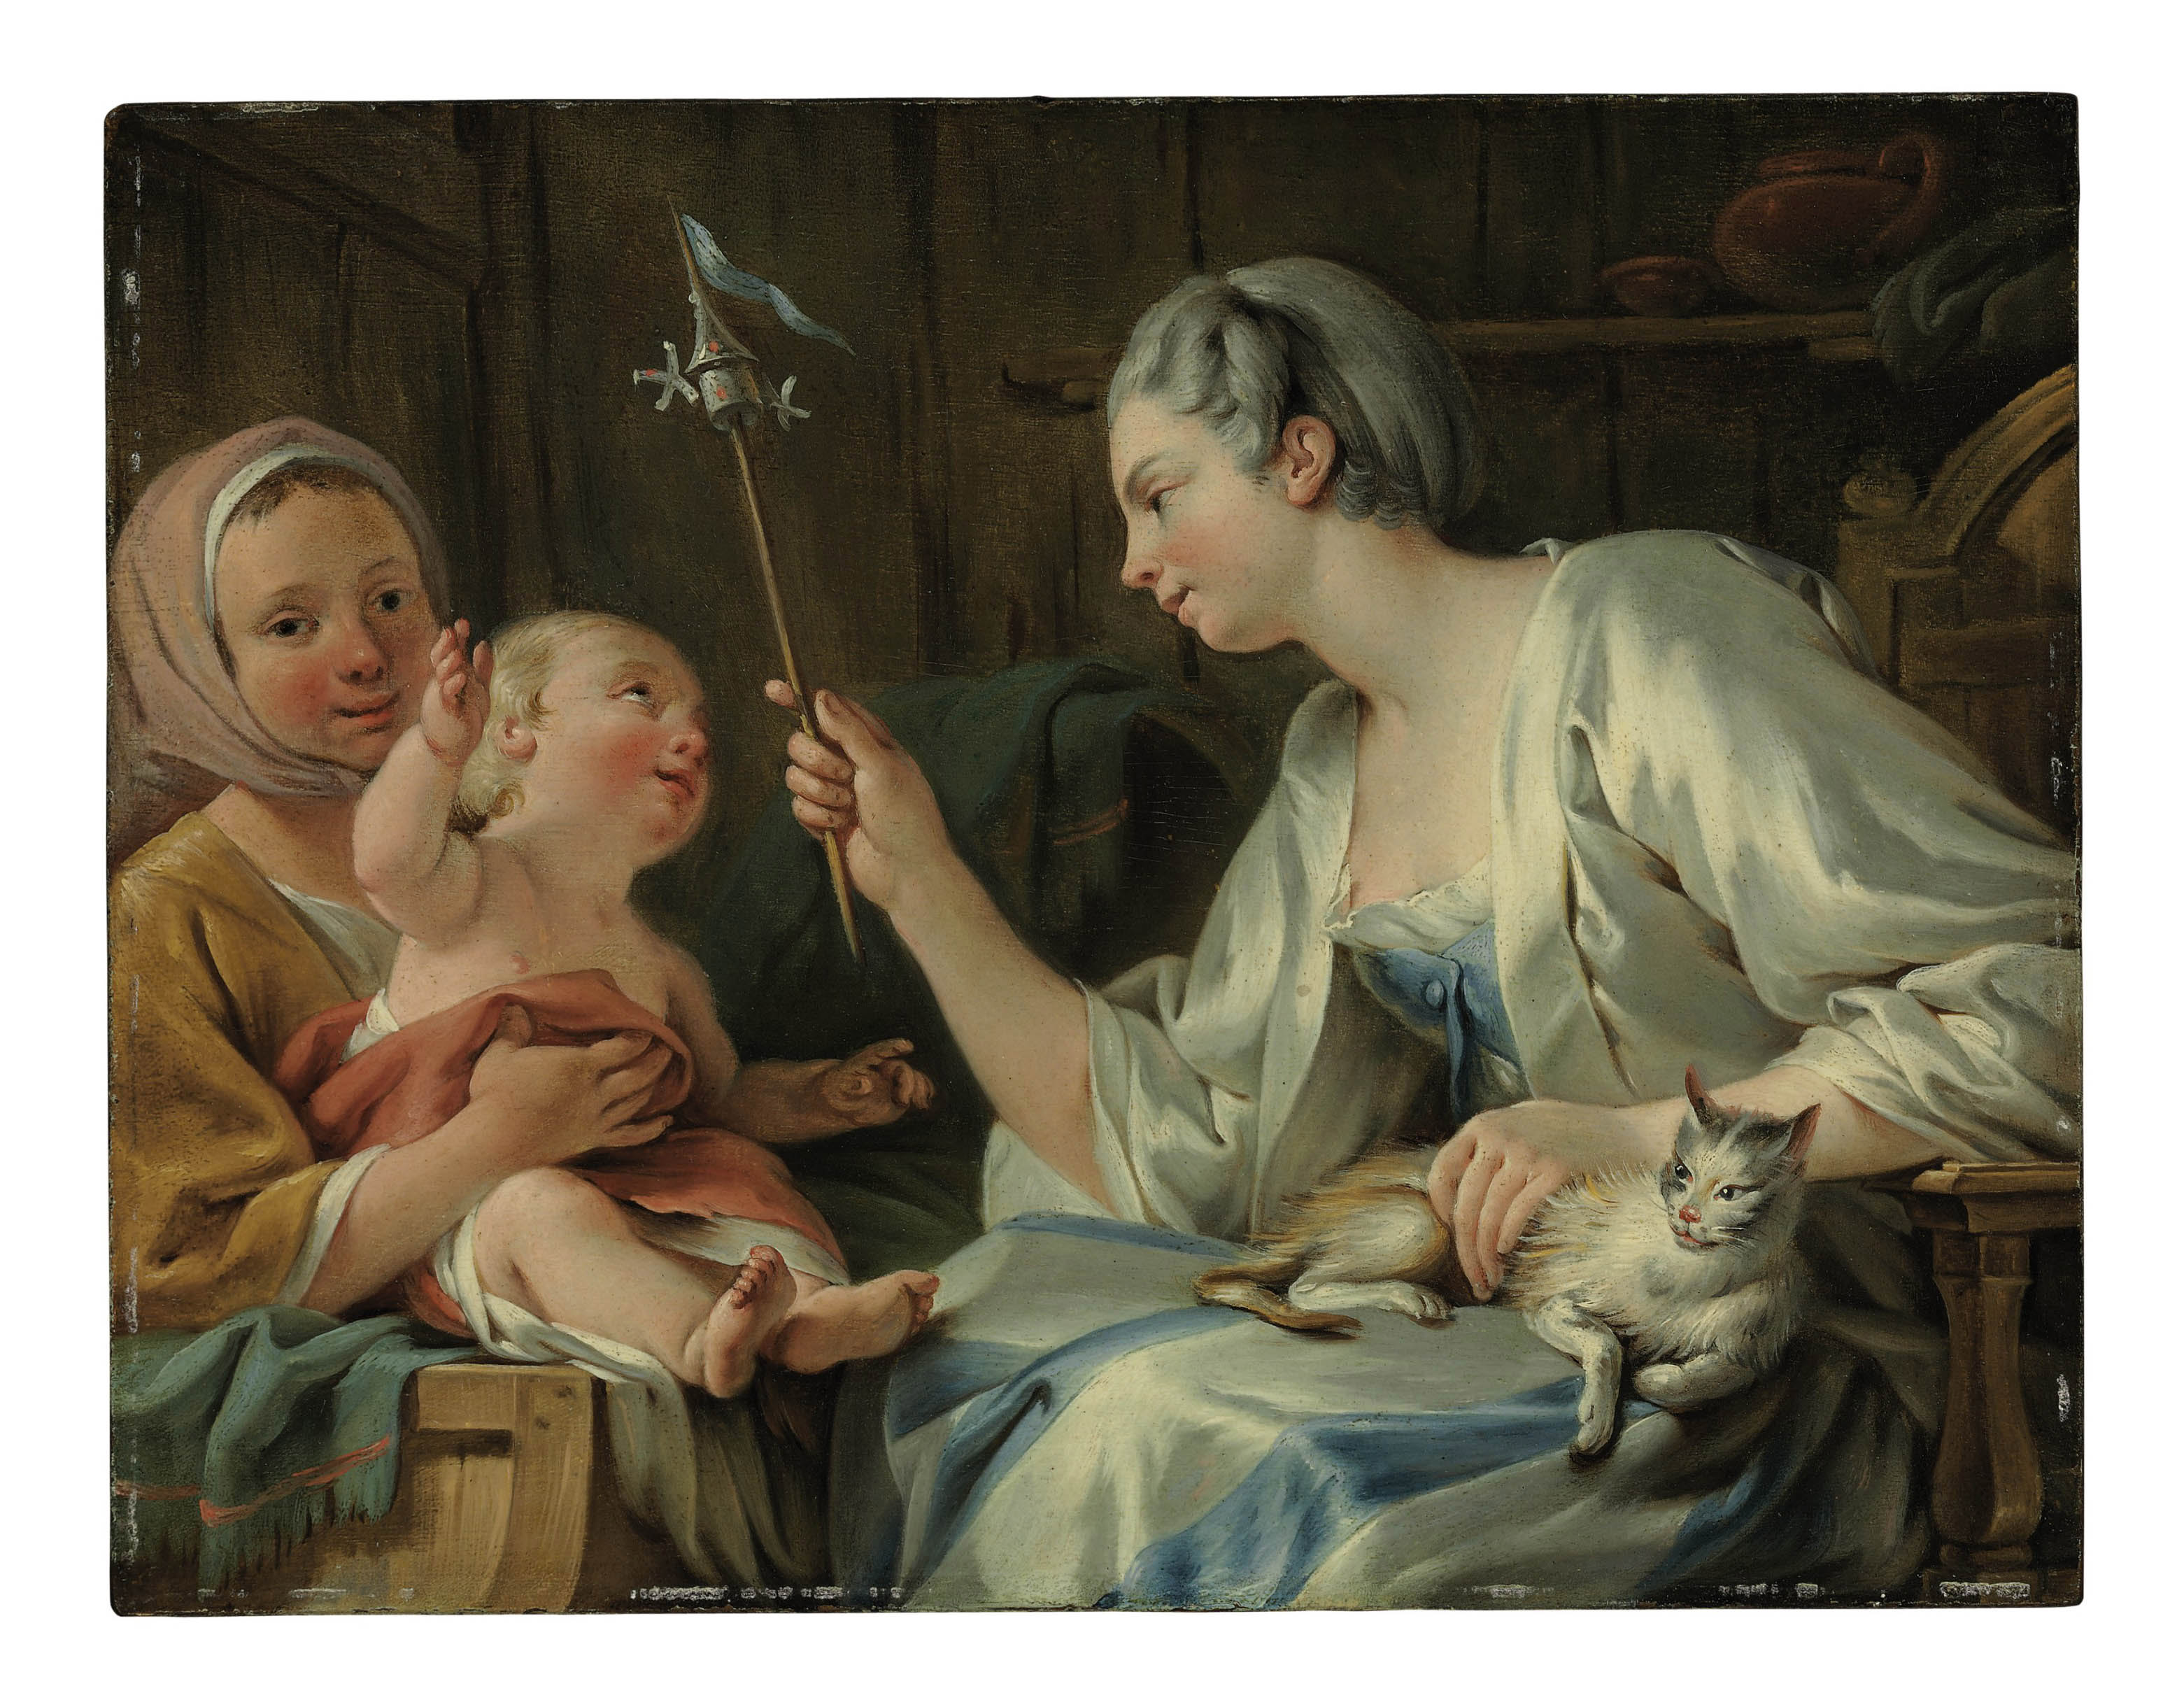 A Lady entertaining a child of a Savoyard woman with a pinwheel